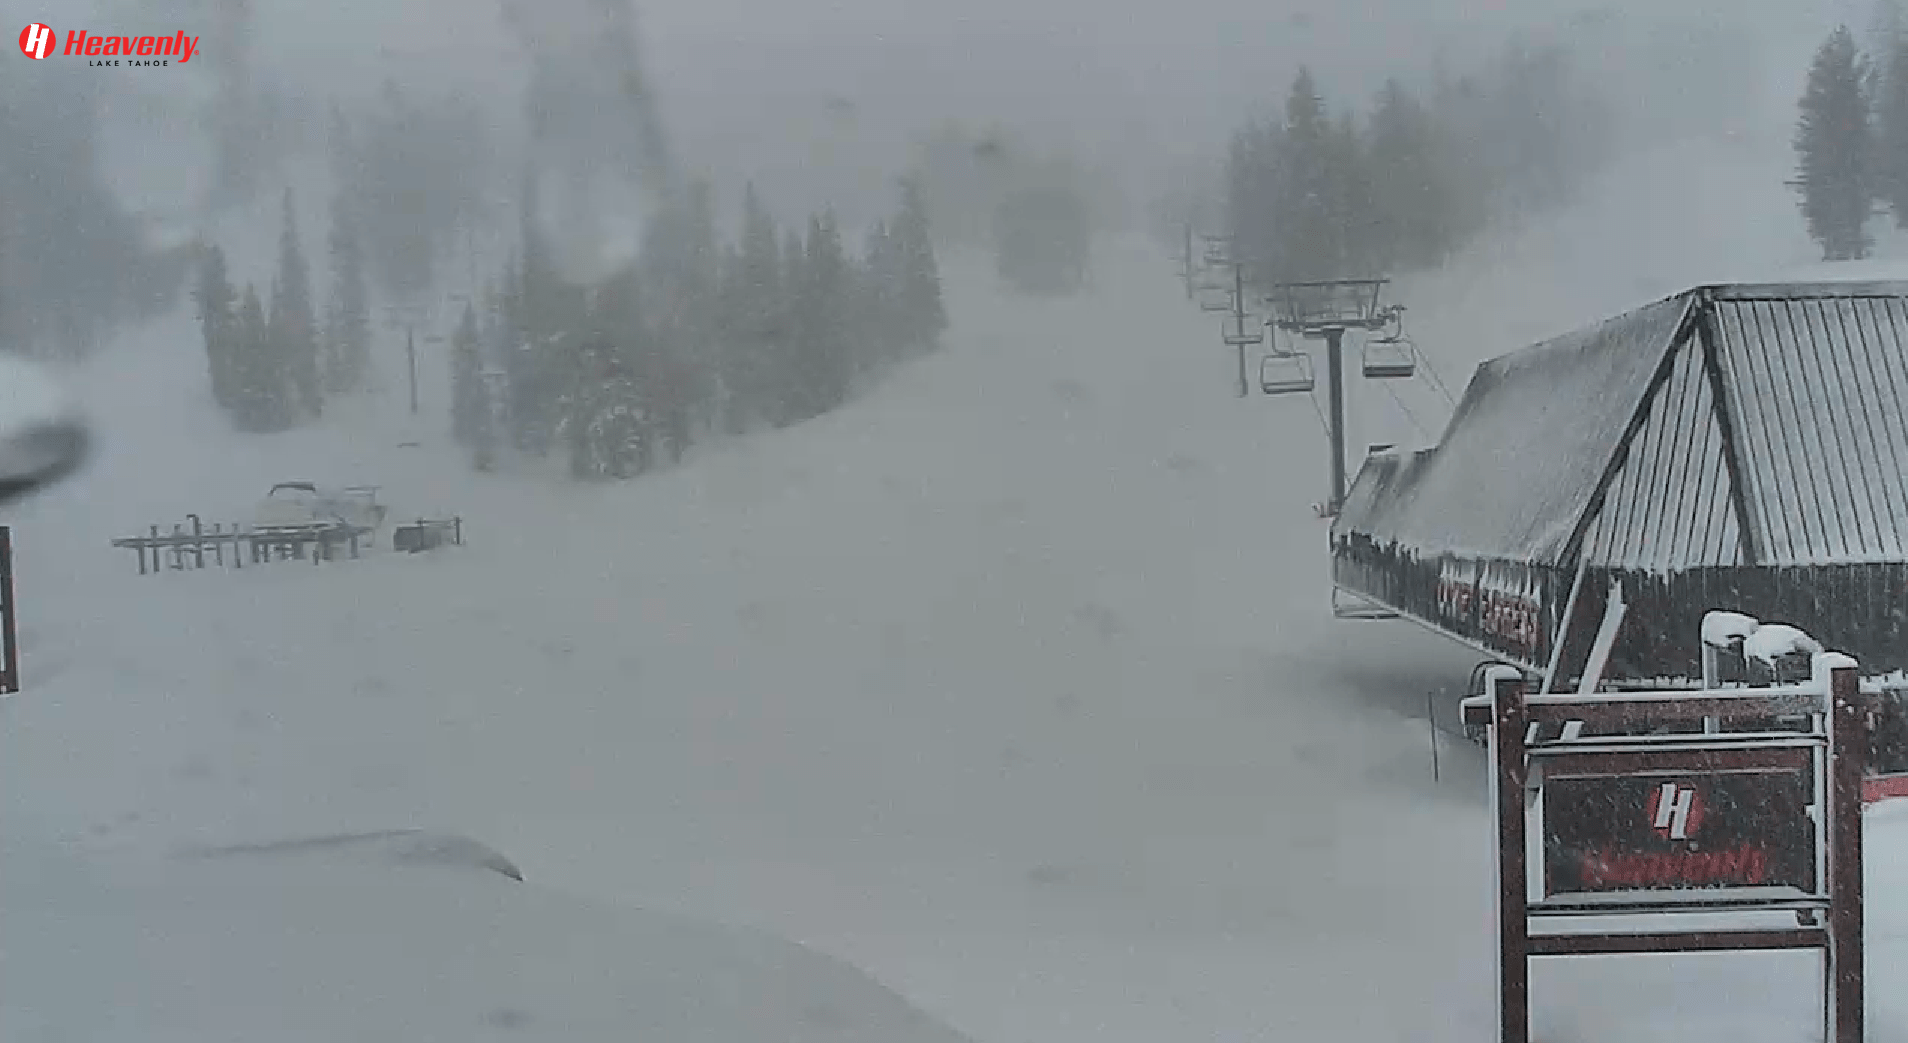 Blizzard at Heavenly. Image: Heavenly Mountain Resort